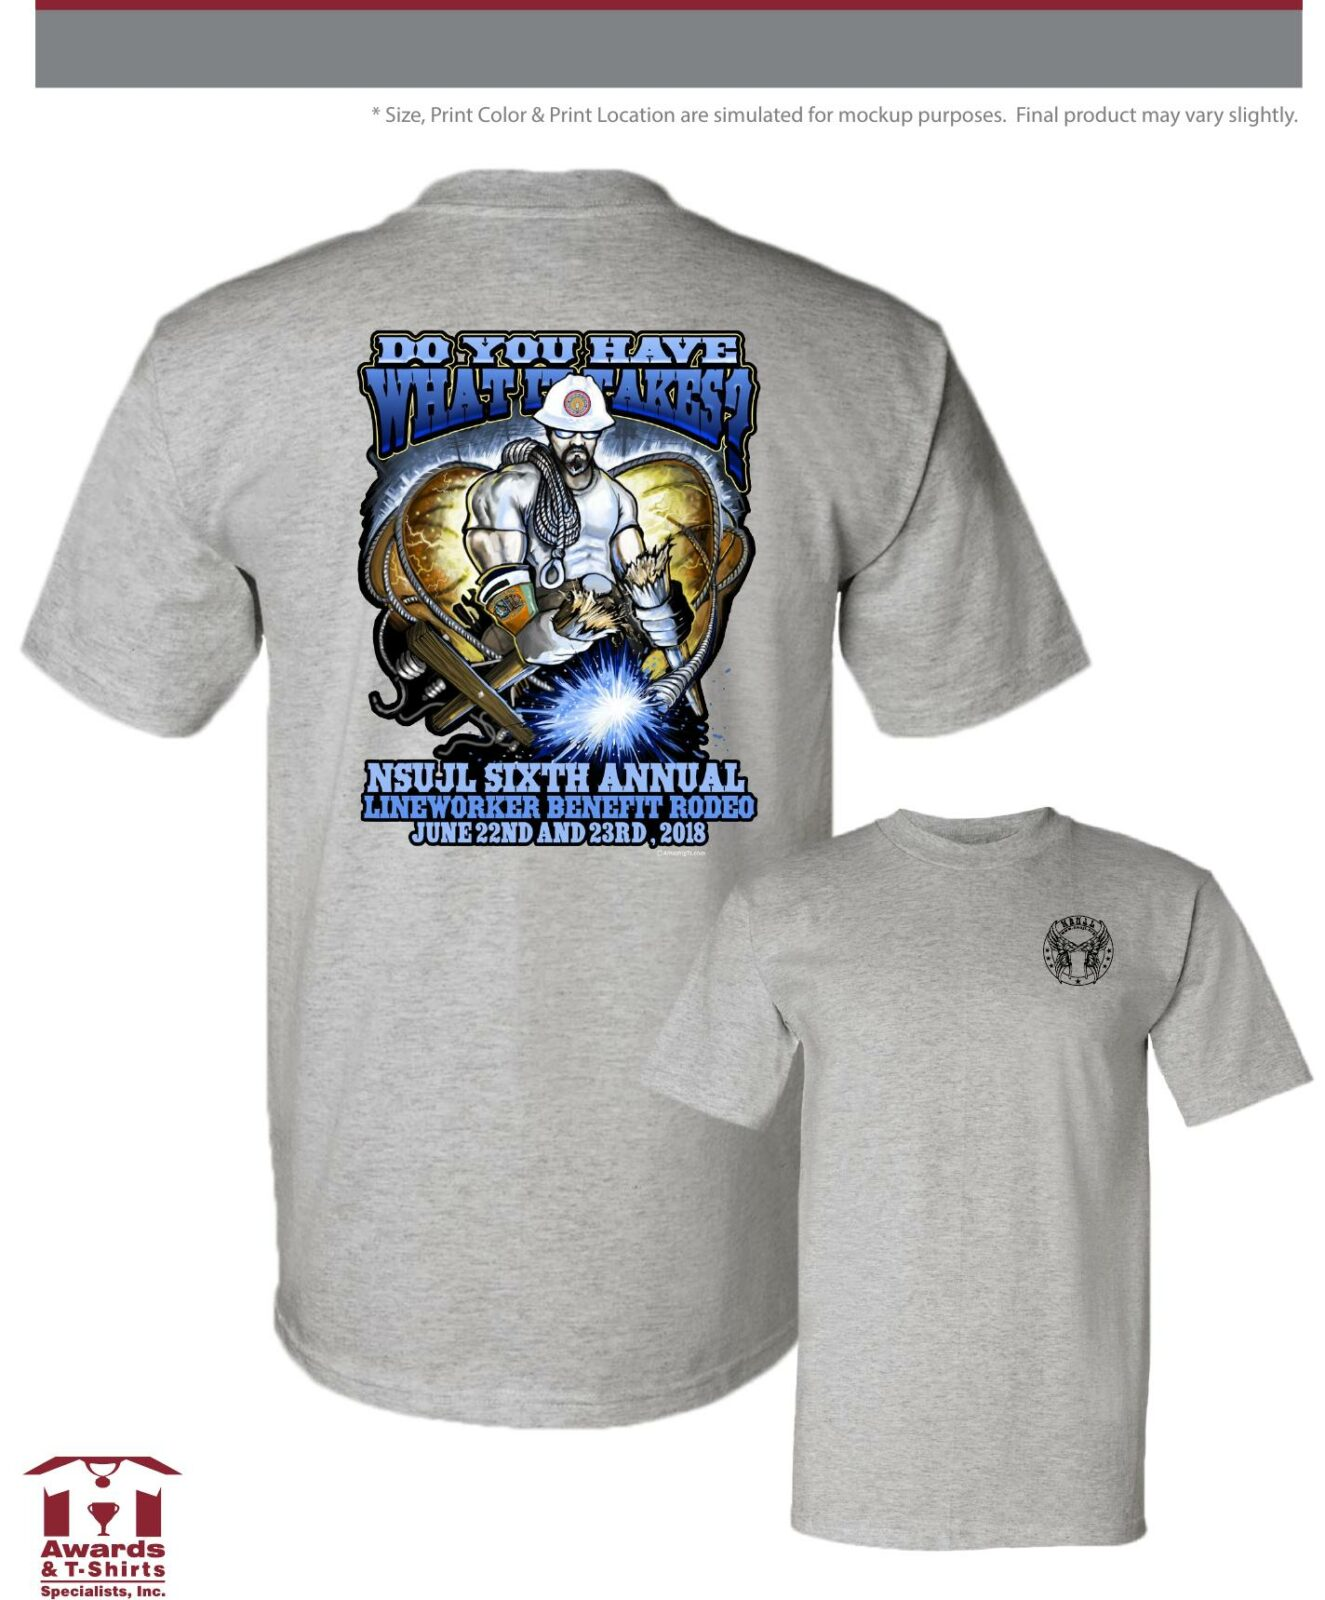 6a3cab7fe 2018 Lineman Rodeo Do you have what it takes t-shirt